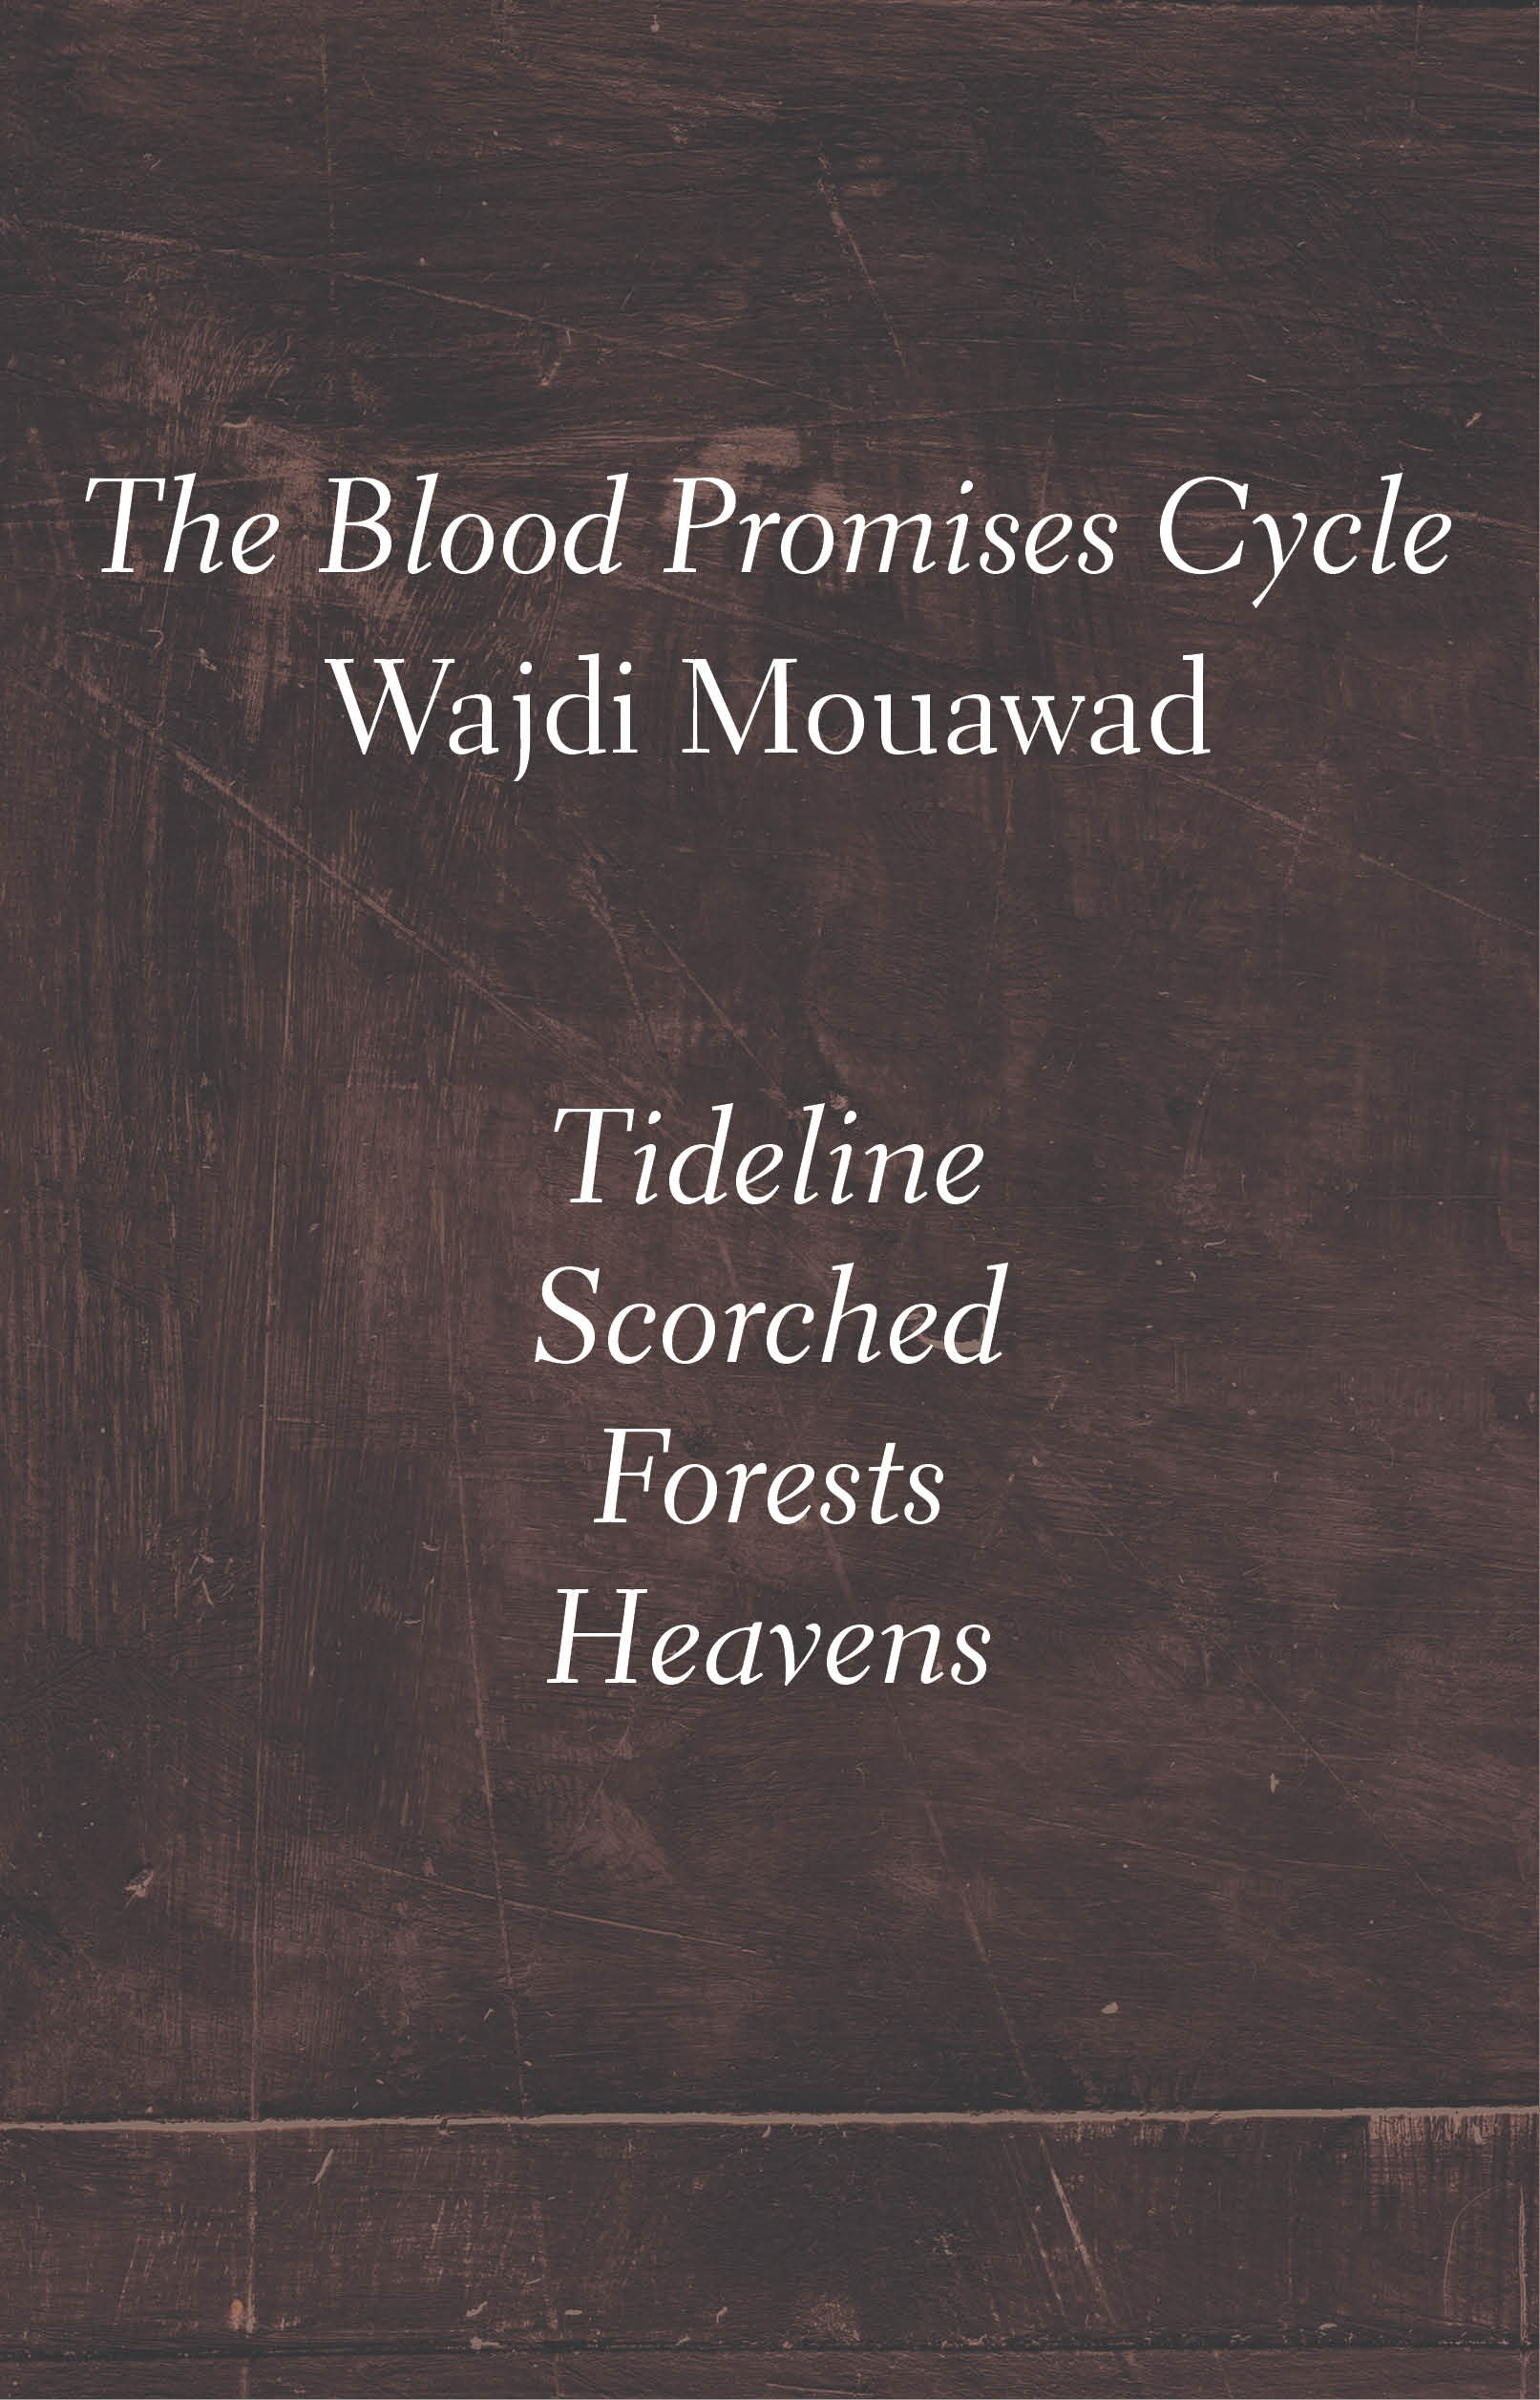 The Blood Promises Cycle